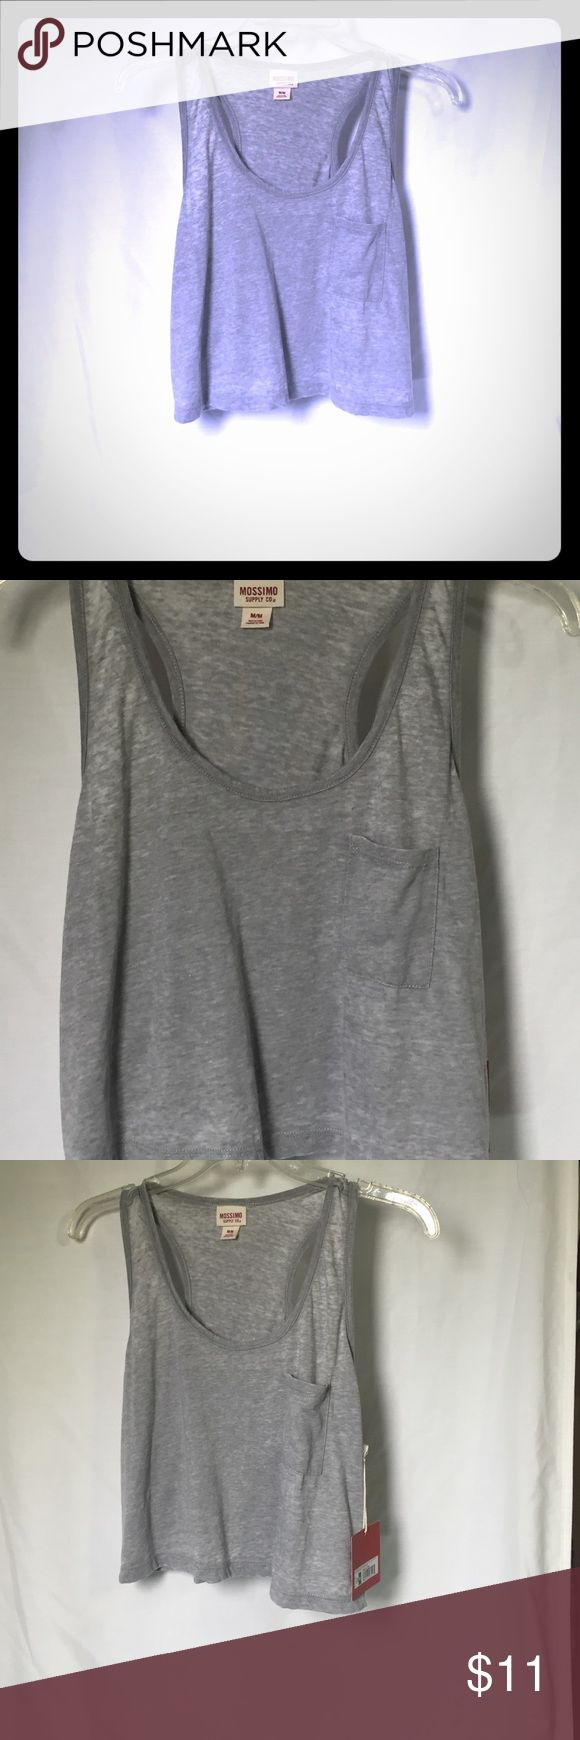 Mossimo burnt out gray crop razorback tank top New with tags. Gray mossimo tank top/ crop top. Pocket on front. Size medium mossimo Tops Crop Tops